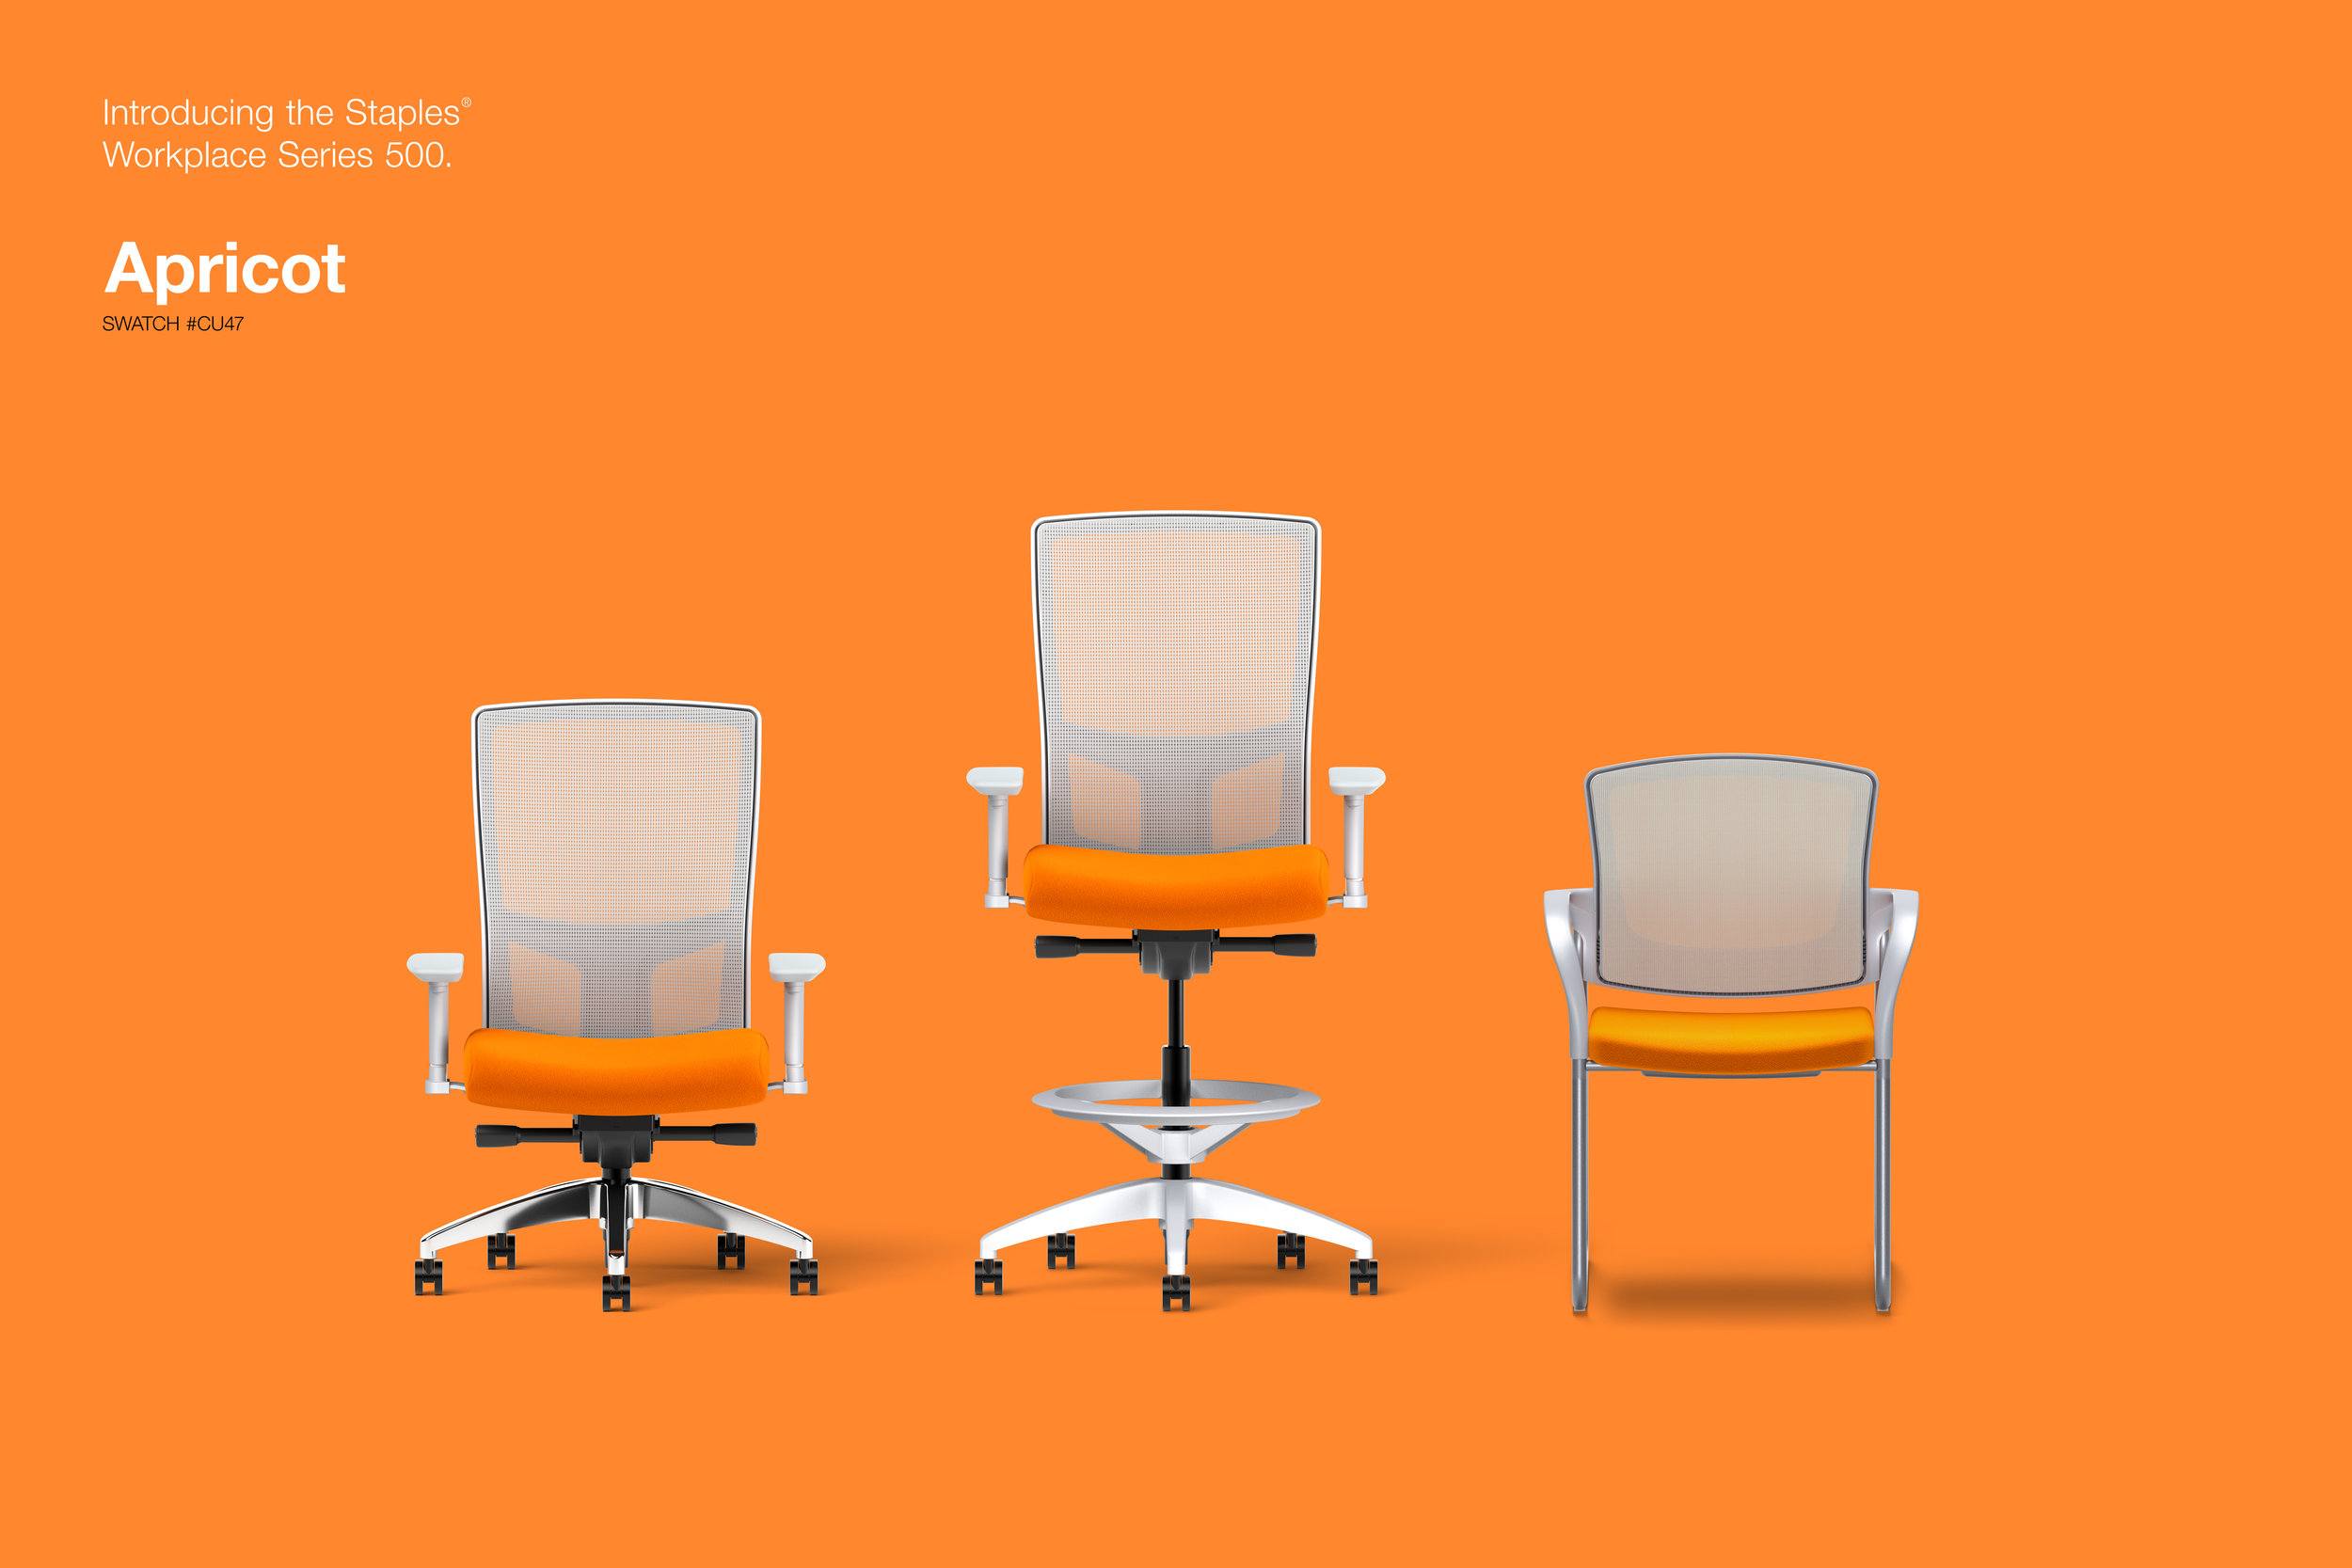 01_Staples-Workplace-Series-Collection-Apricot.jpg